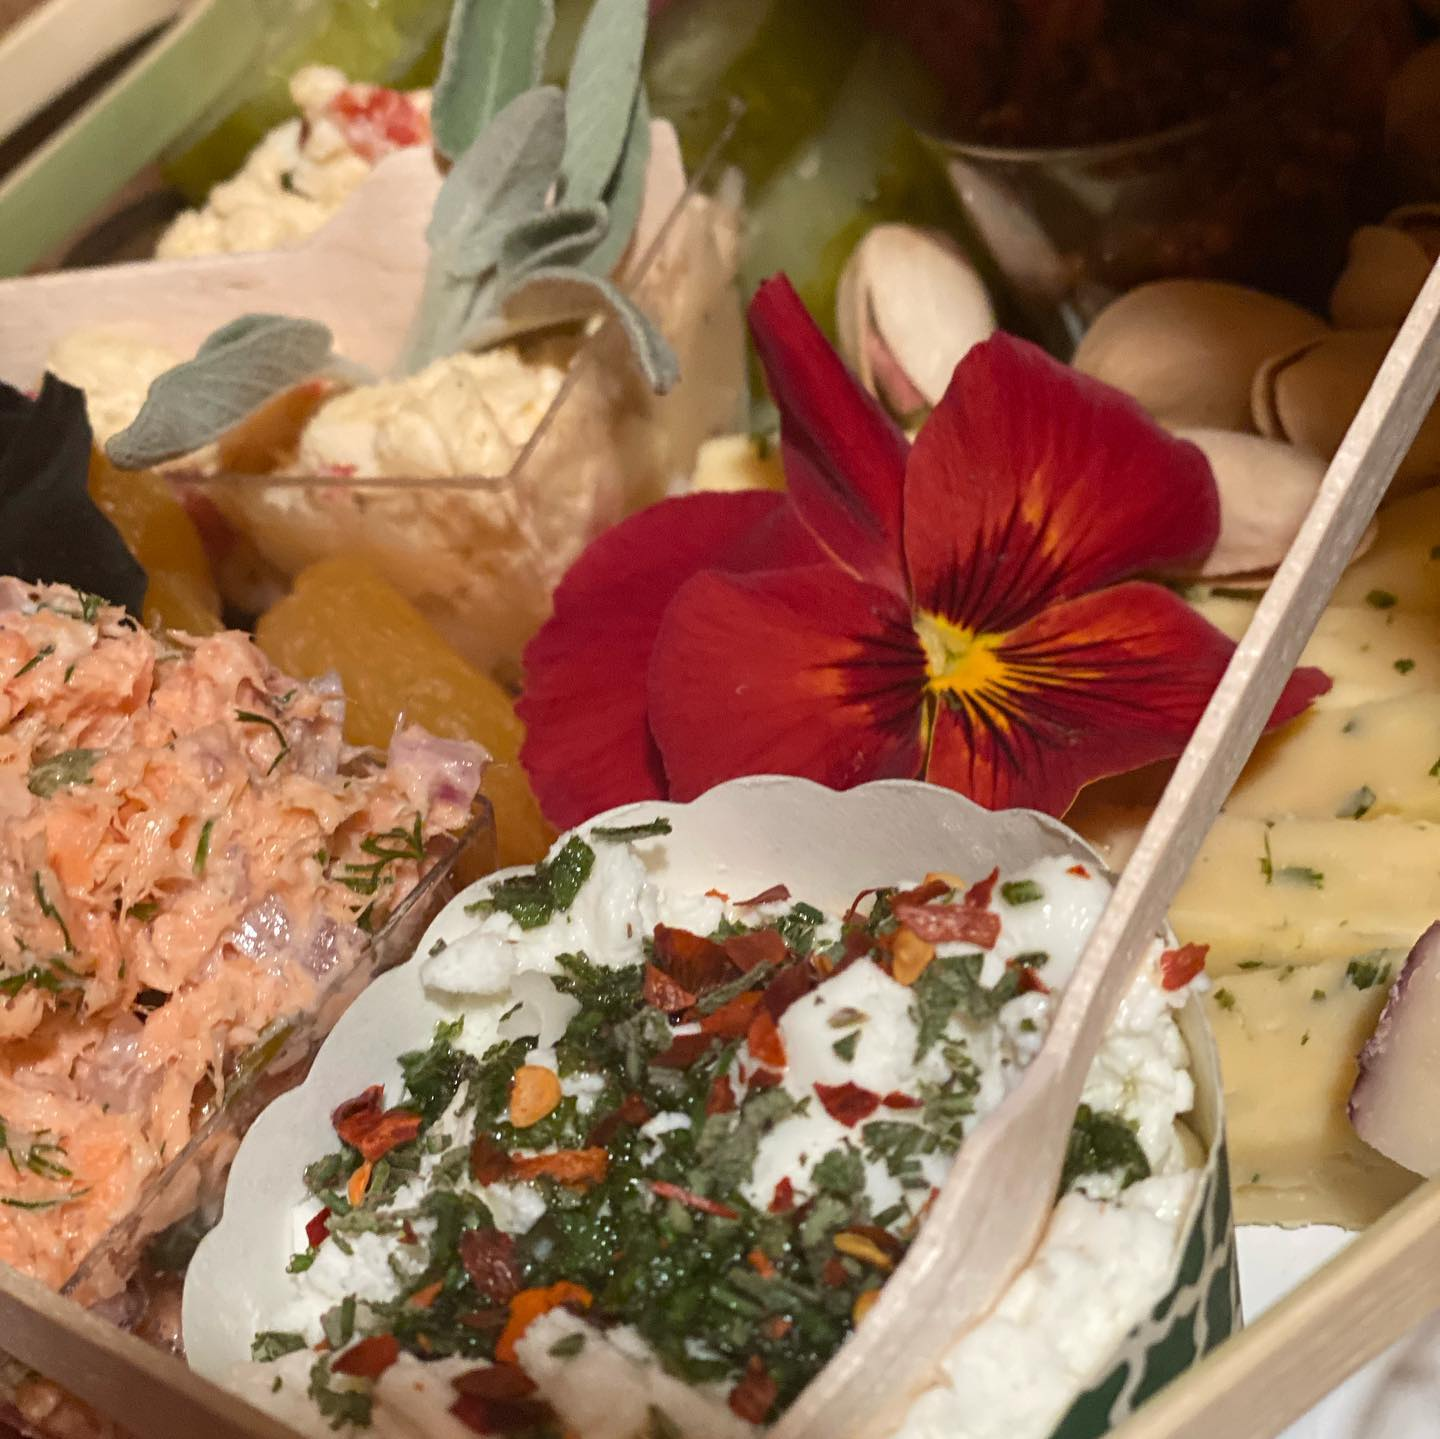 assorted dips, cheeses and nuts